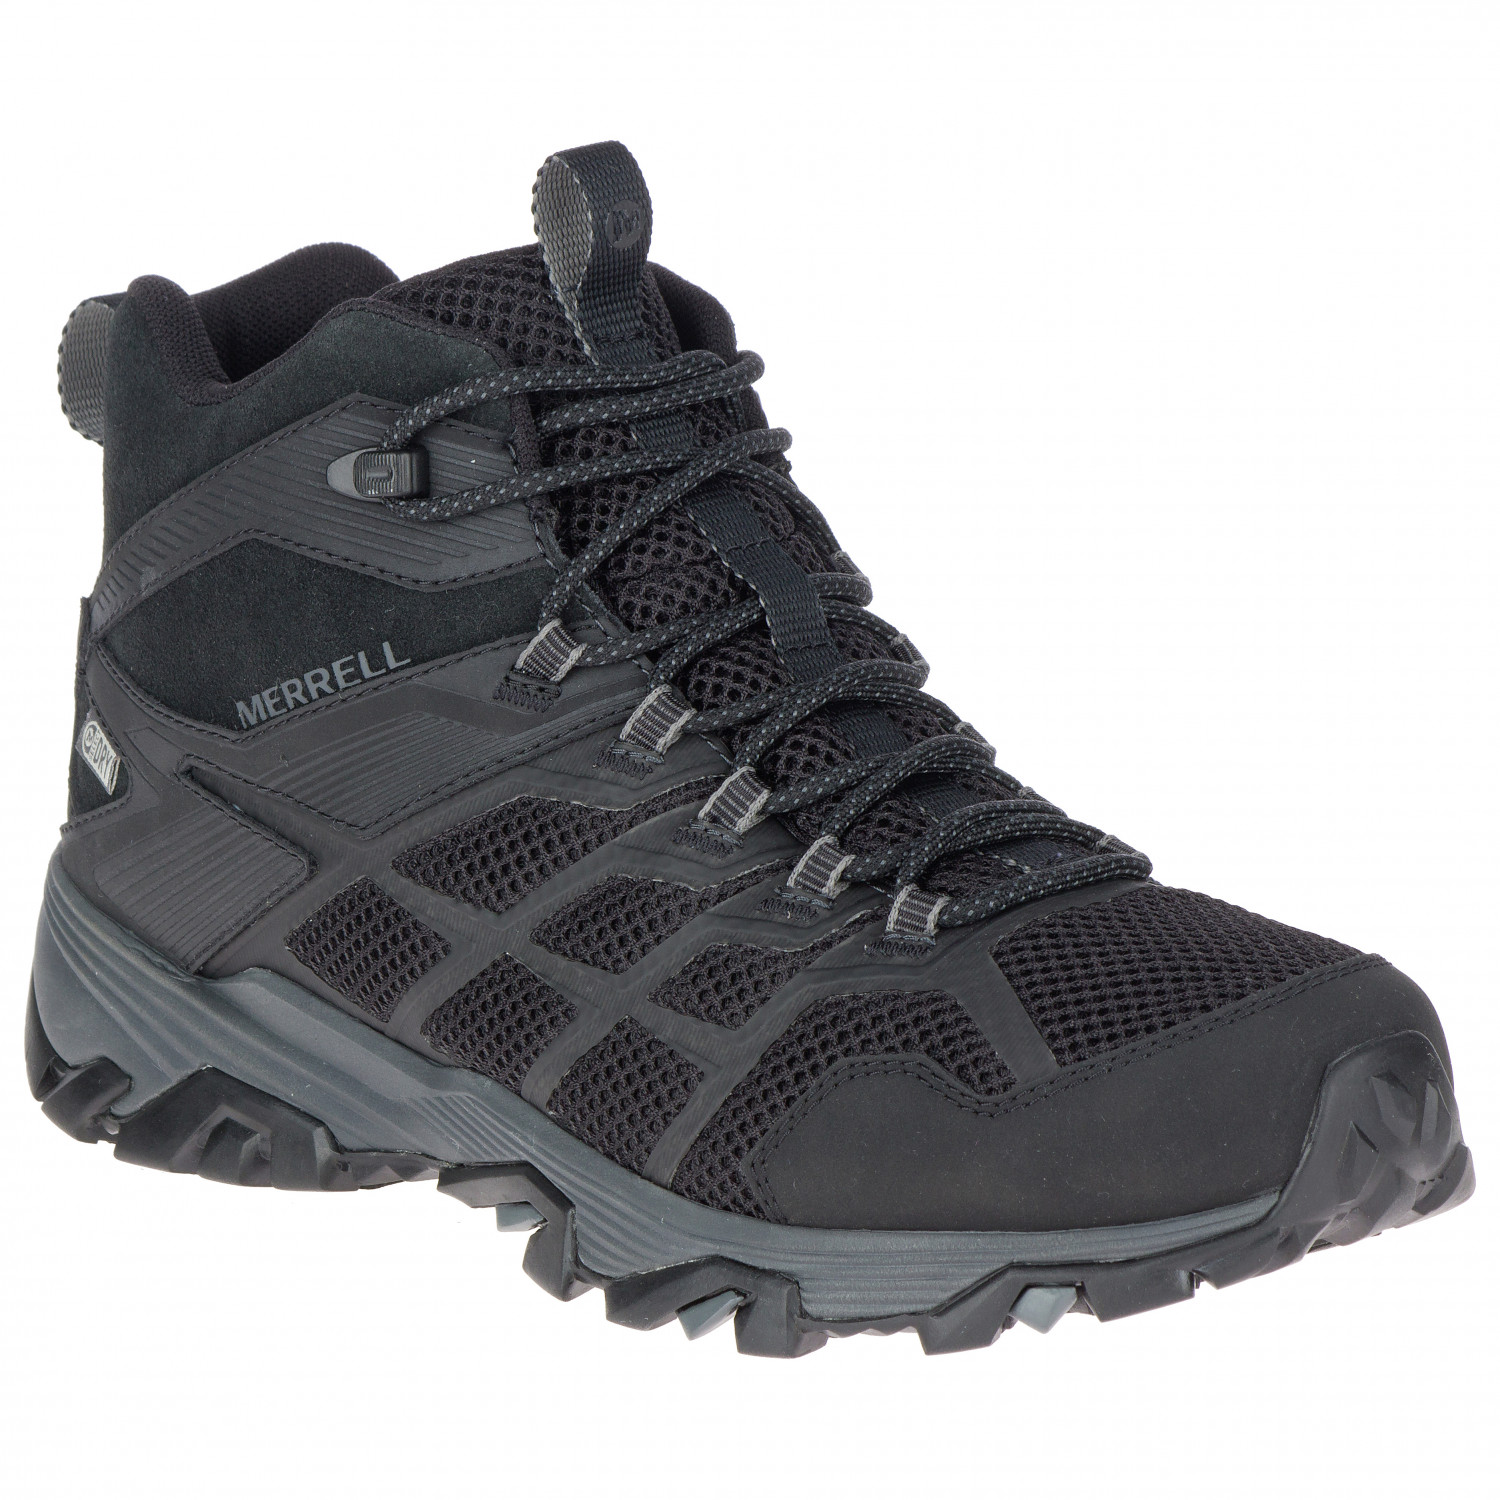 merrell moab boots for sale online